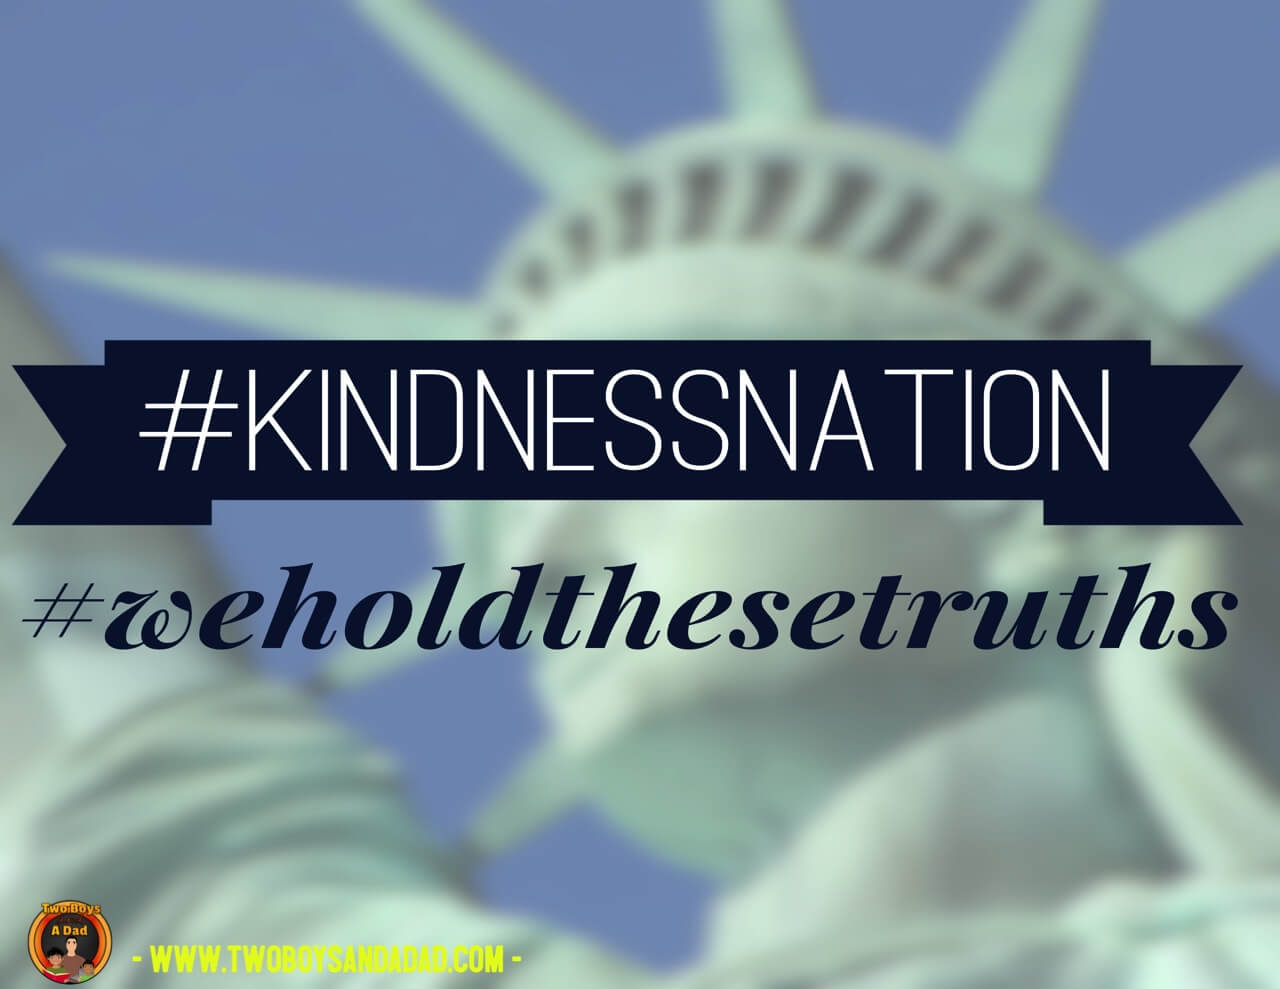 #kindnessnation #weholdthesetruths